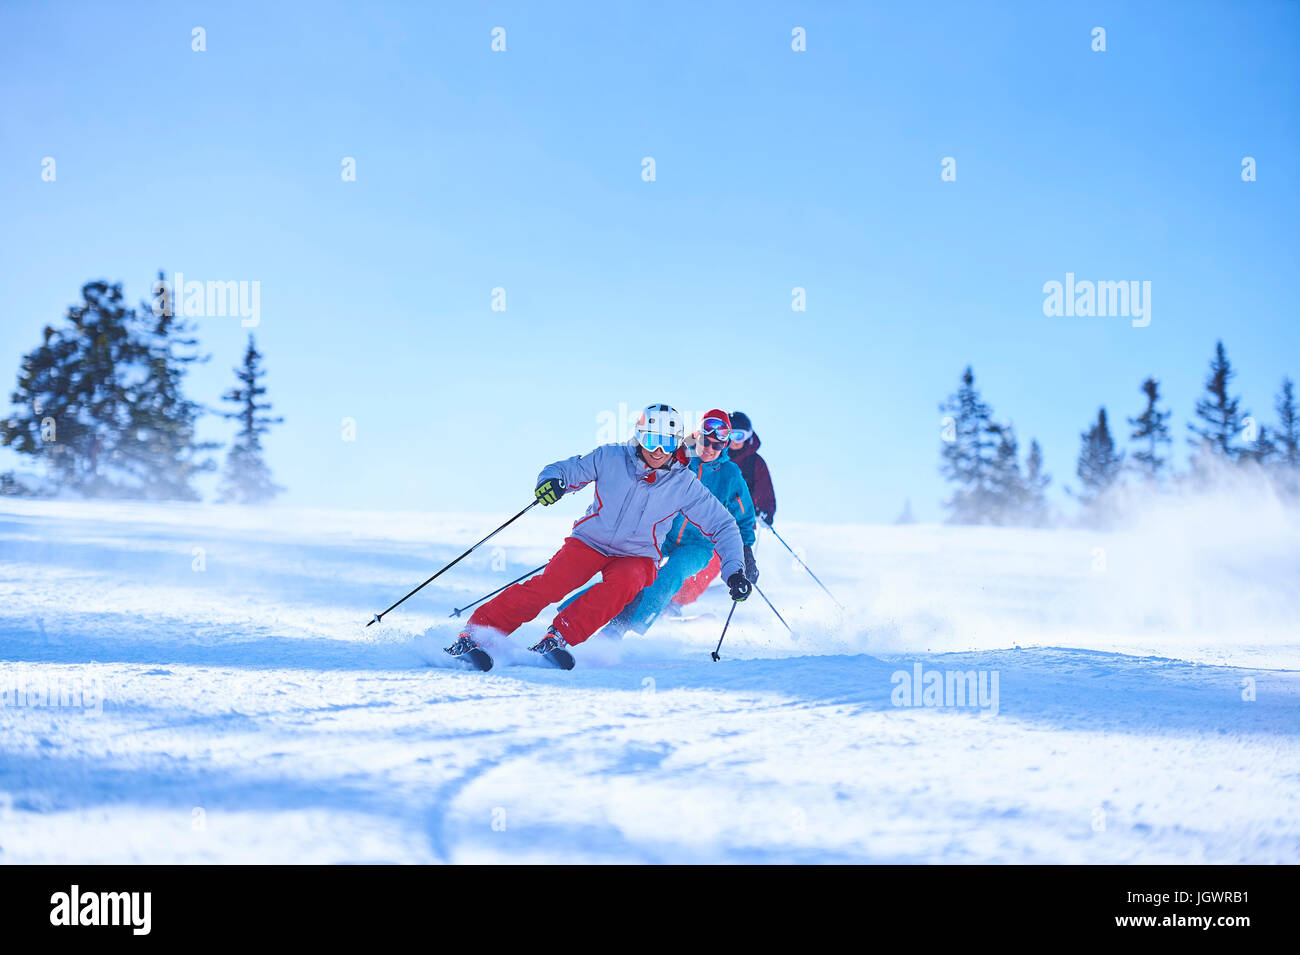 Row of male and female skiers skiing down snow covered ski slope, Aspen, Colorado, USA - Stock Image